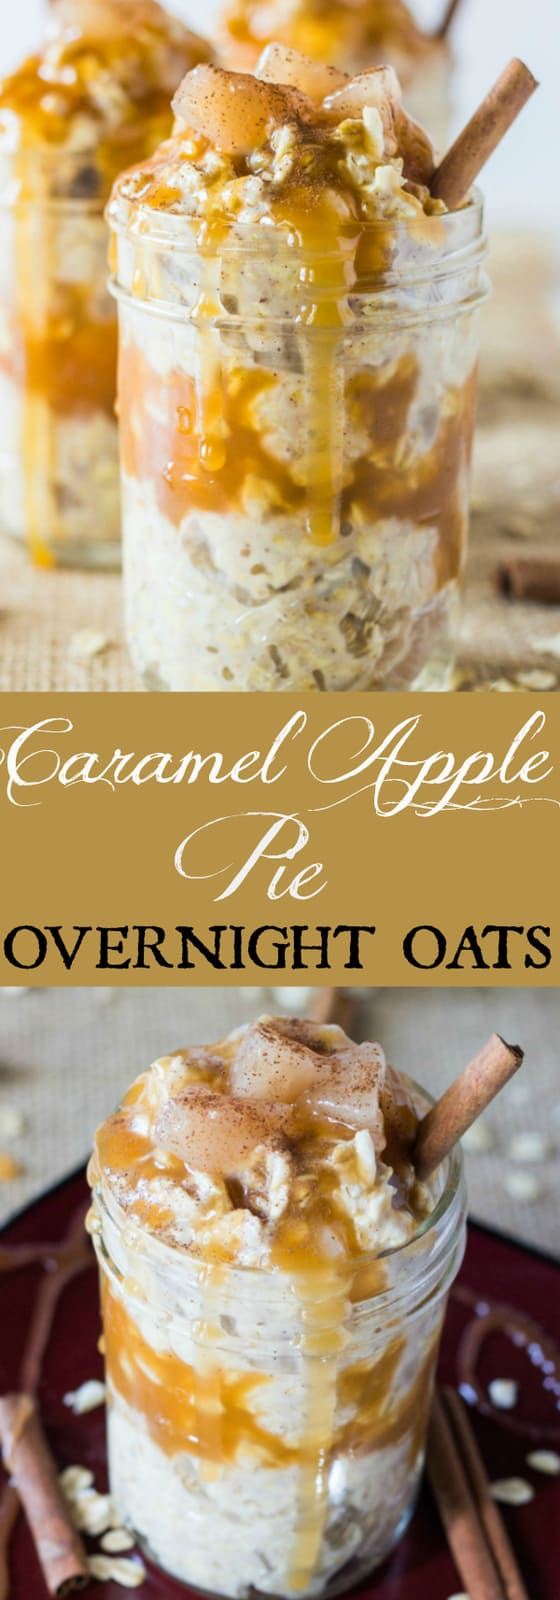 Caramel Apple Pie Overnight Oats collage with words in middle